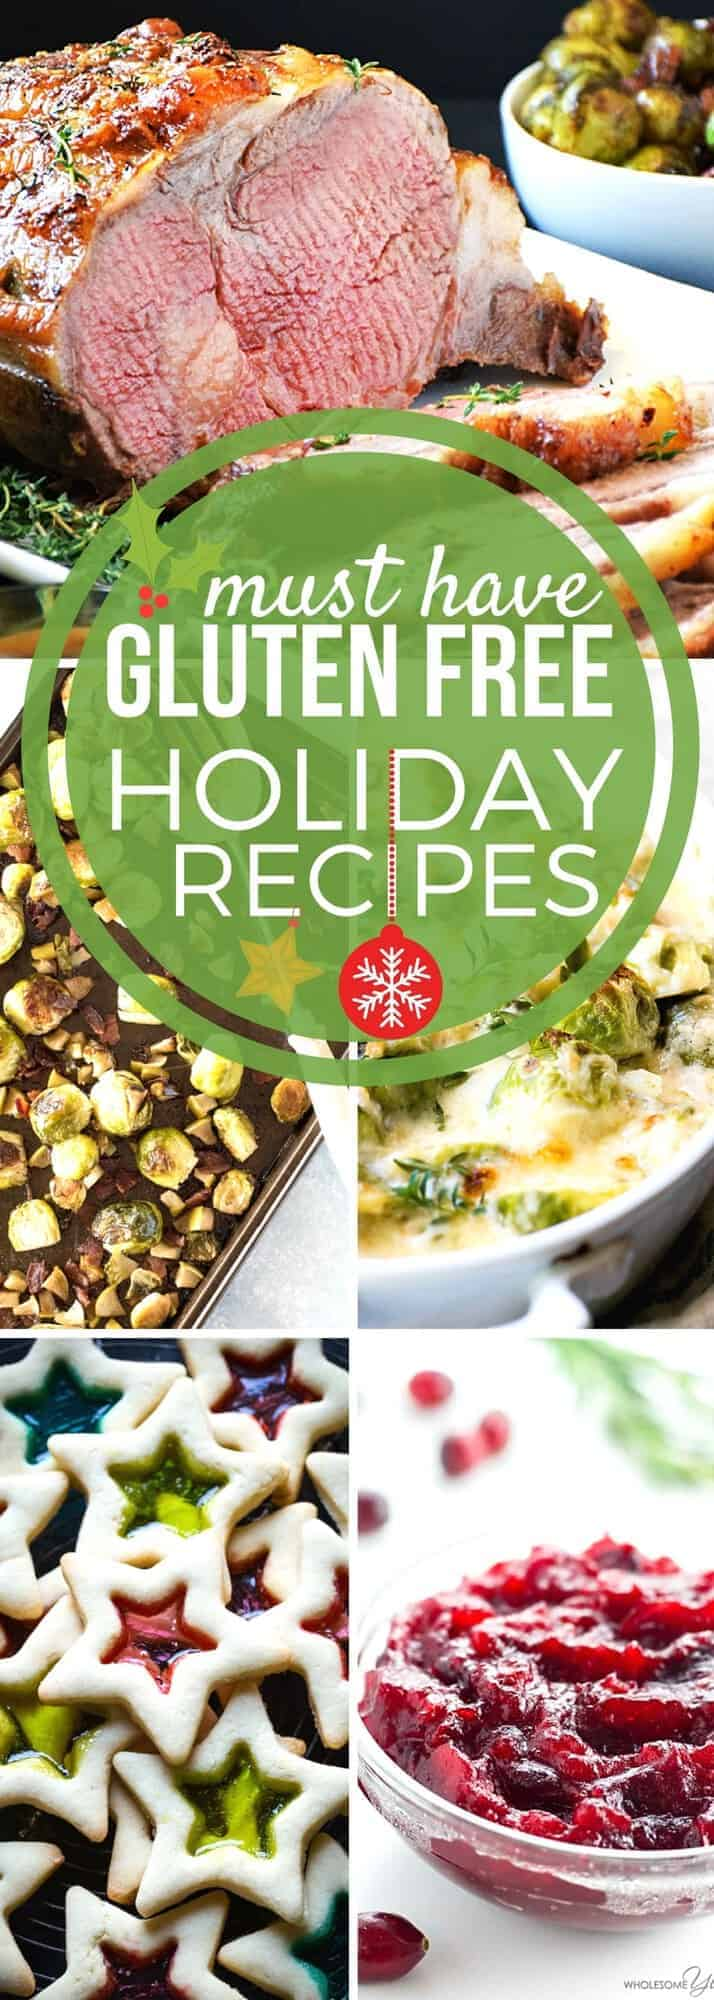 Need GLUTEN FREE recipes? We've got you covered! Here's our collection of the best and most delicious gluten free holiday recipes. Gluten free has never tasted so good. Enjoy the recipes in our holiday collection throughout the holiday season and beyond. #SundaySupper #GlutenFree #HolidayRecipes